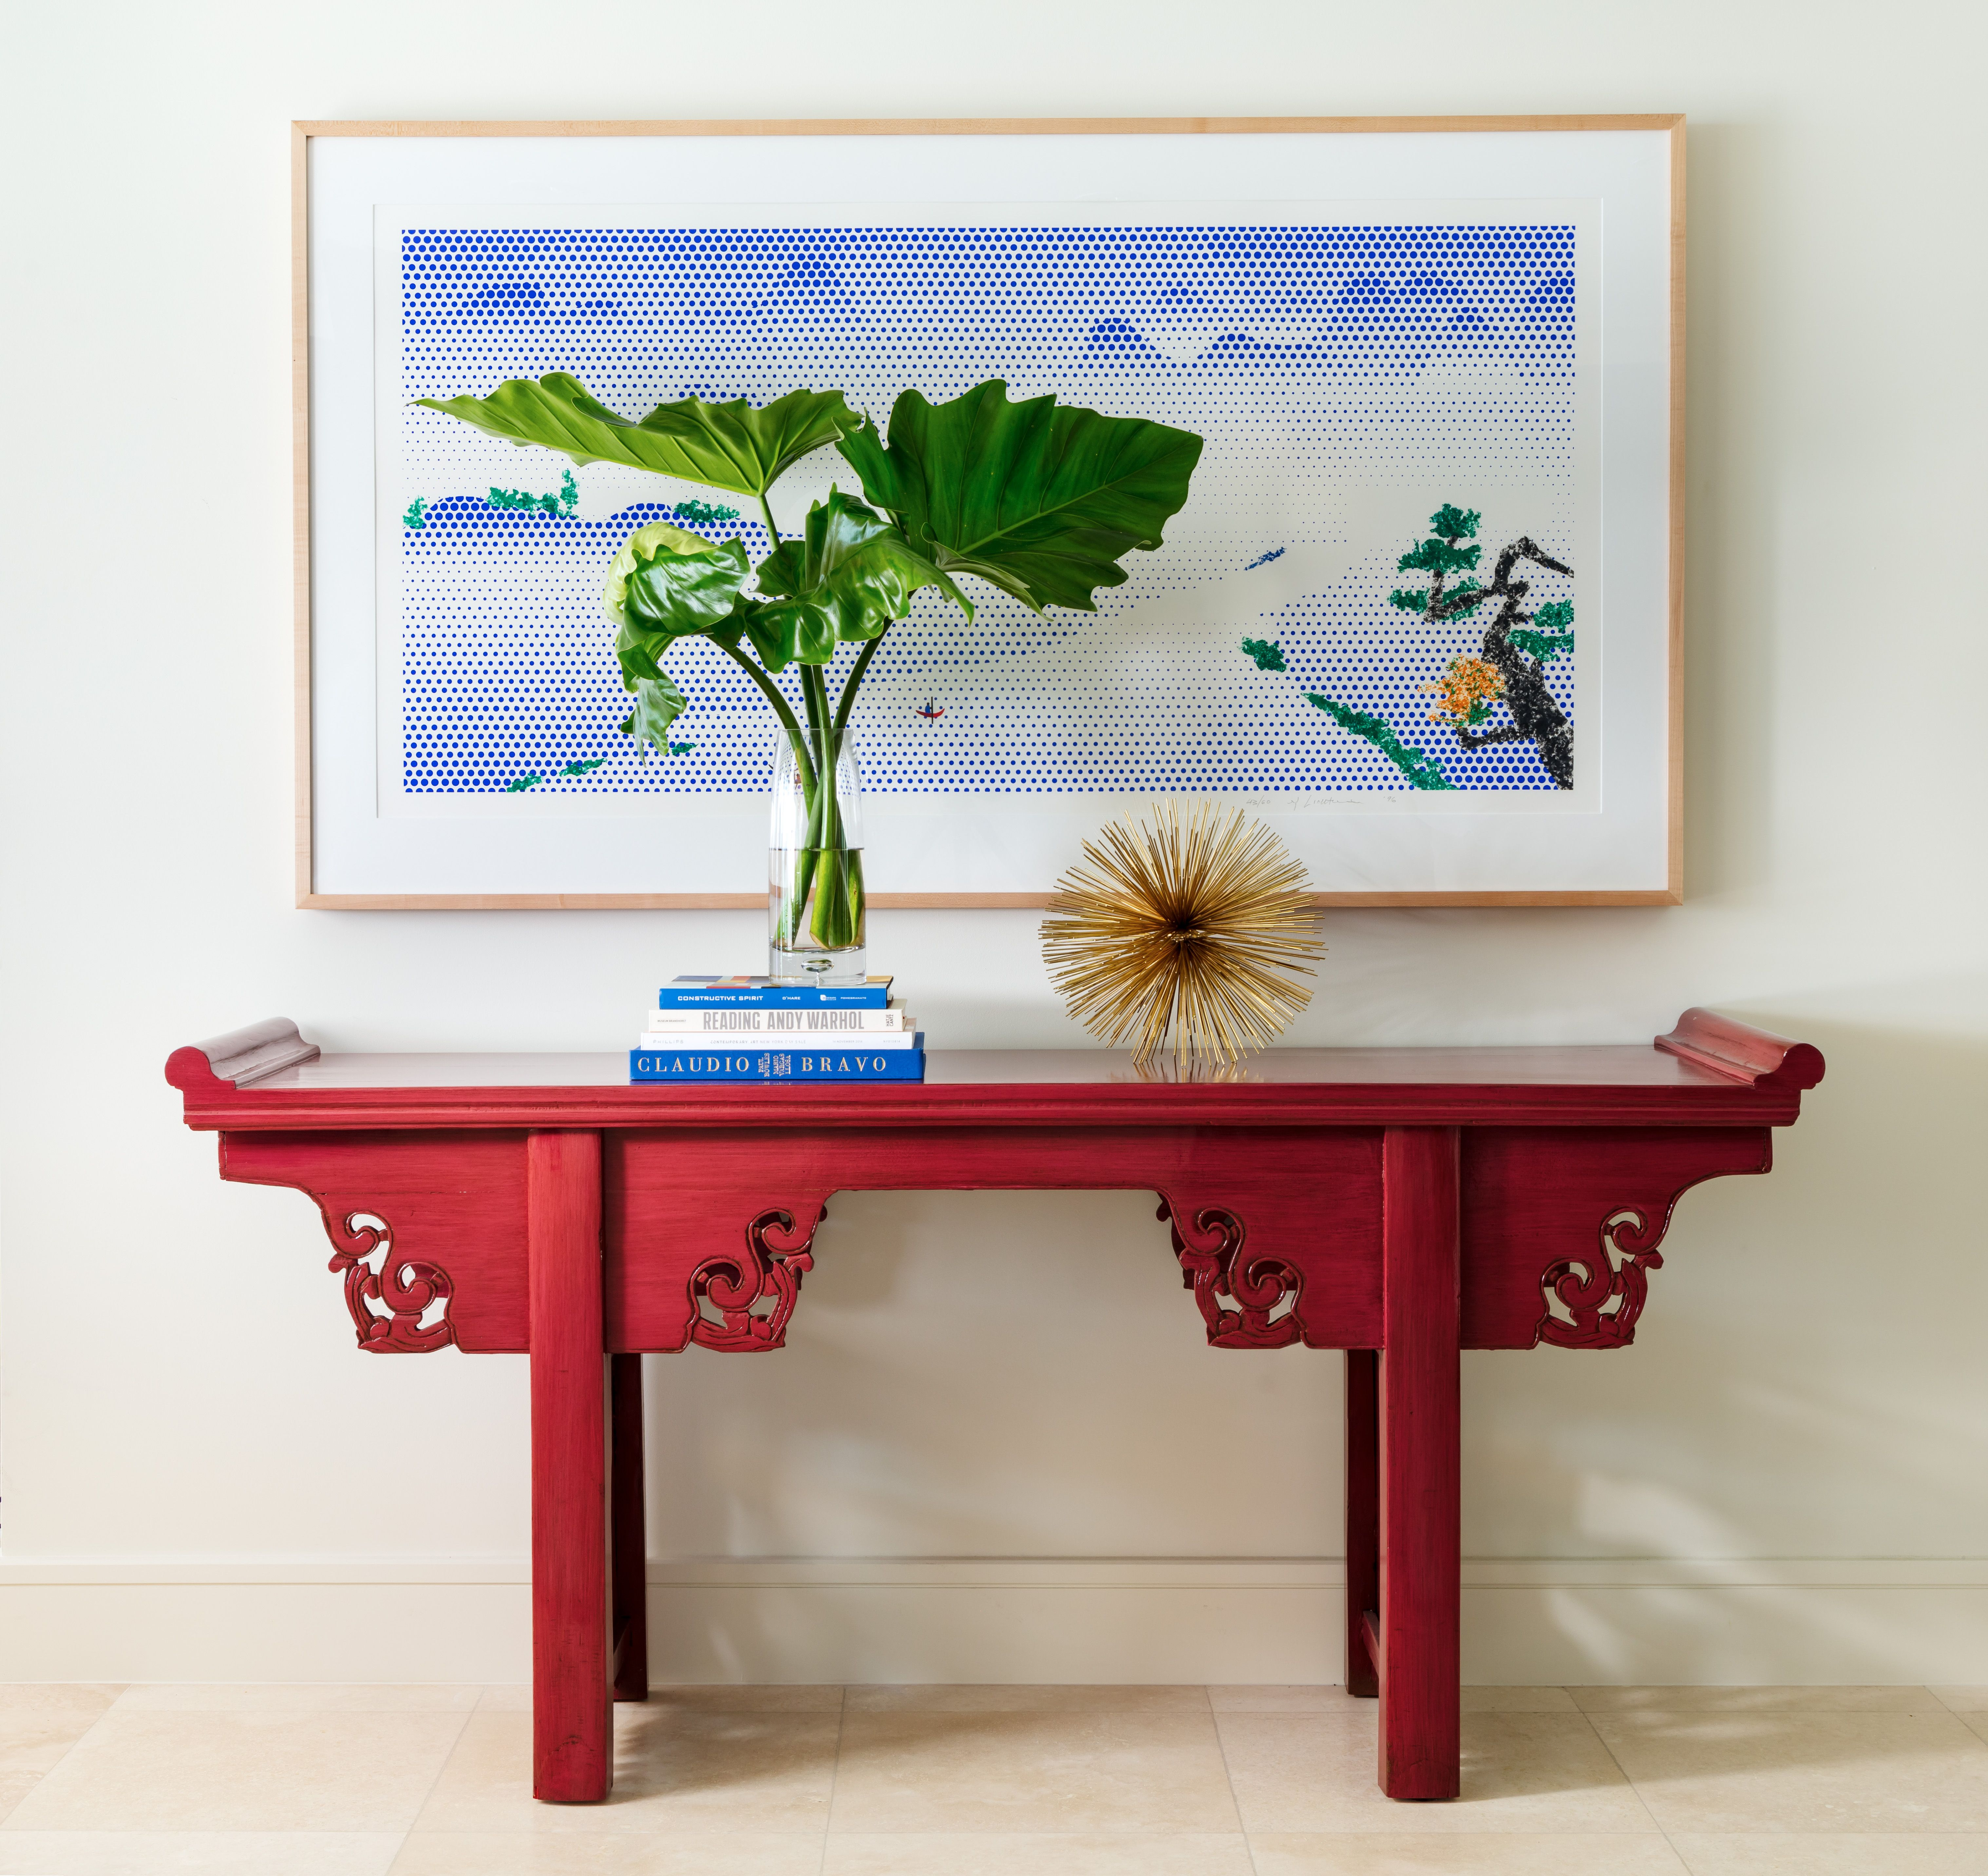 30 Creative Ideas For Styling A Console Table How To Style A Console Table